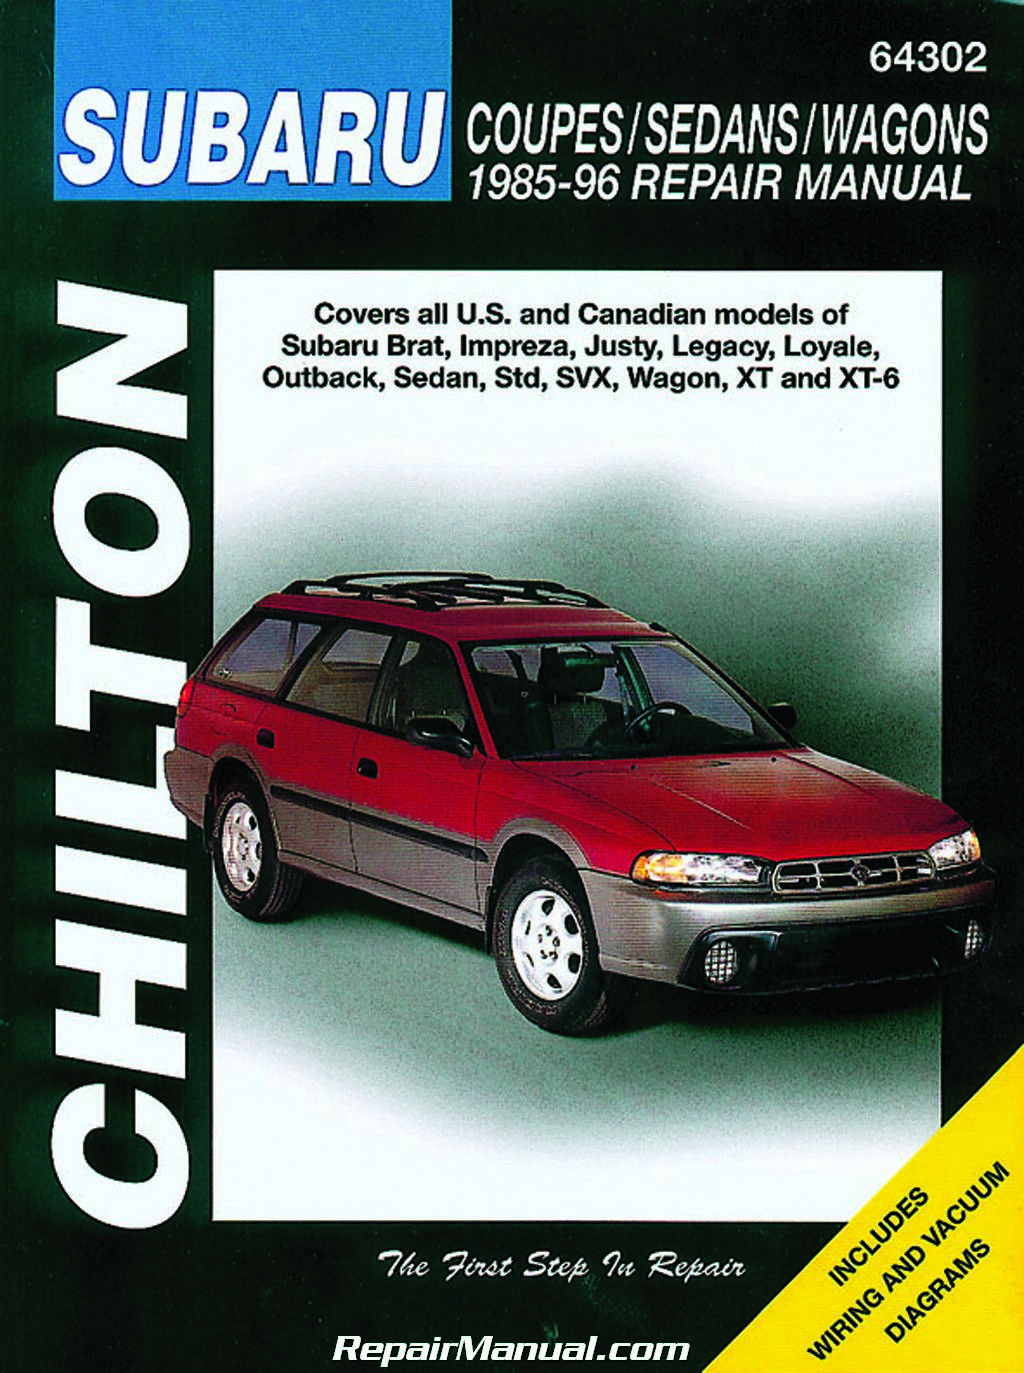 Subaru Brat Impreza Justy Legacy Loyale Outback Sedan Std SVX Wagon XT XT-6  1985-1996 Repair Manual